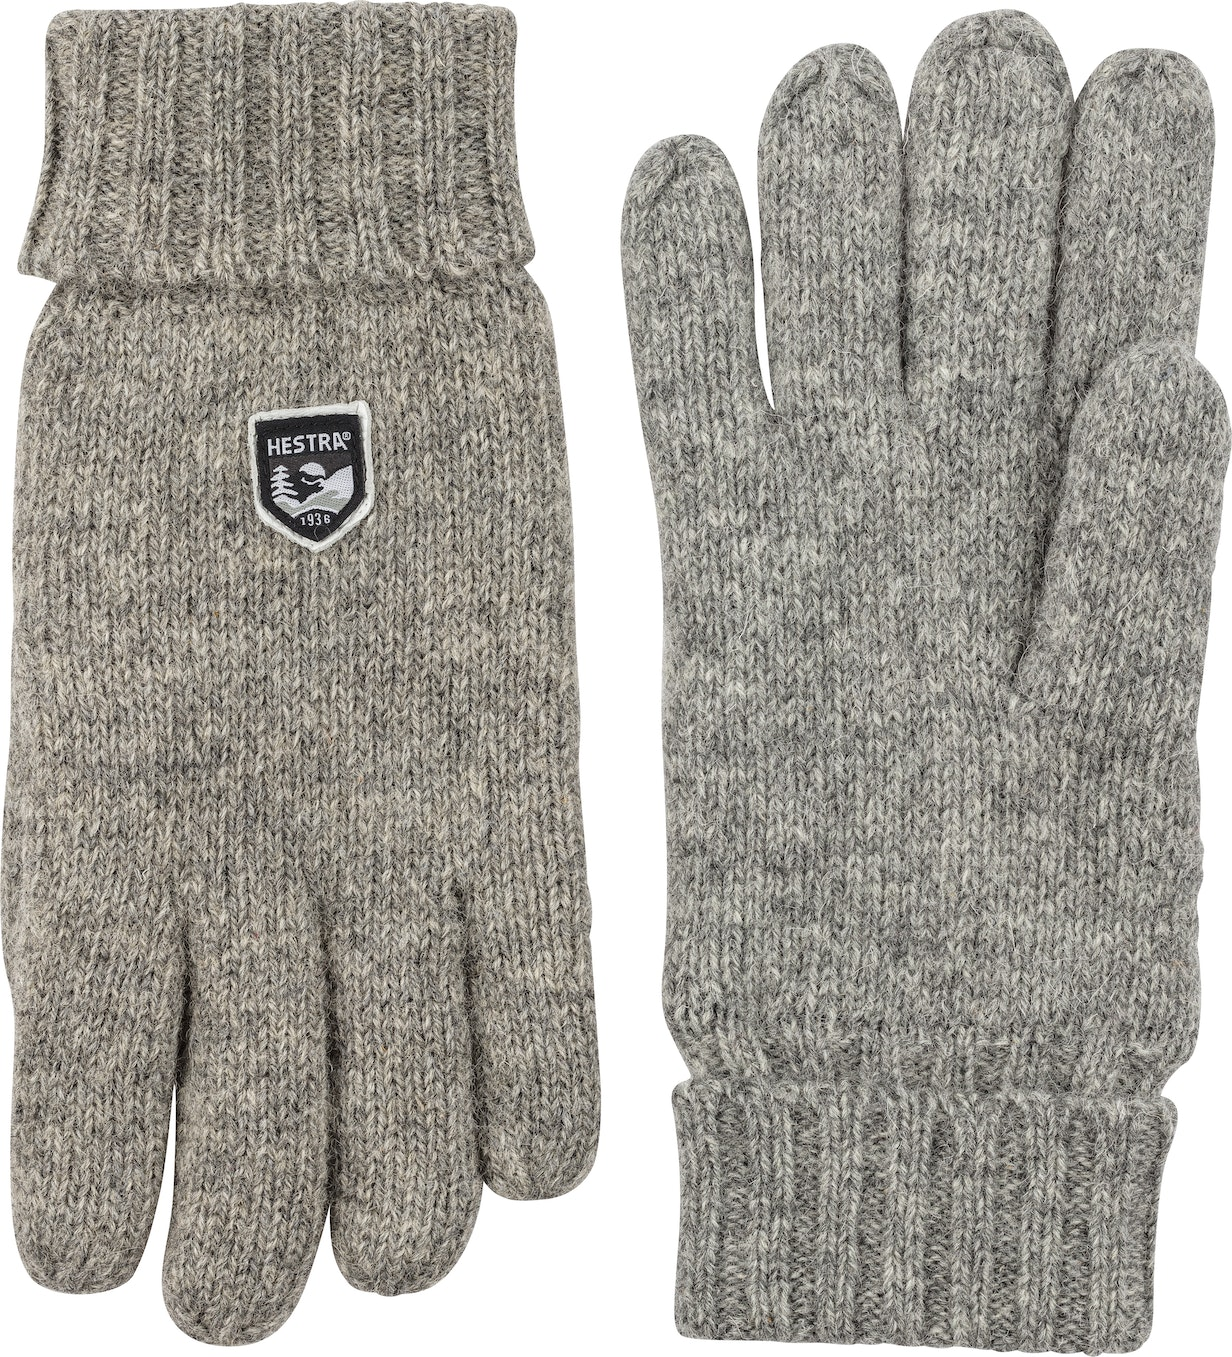 Product image for 63660 Basic Wool Glove